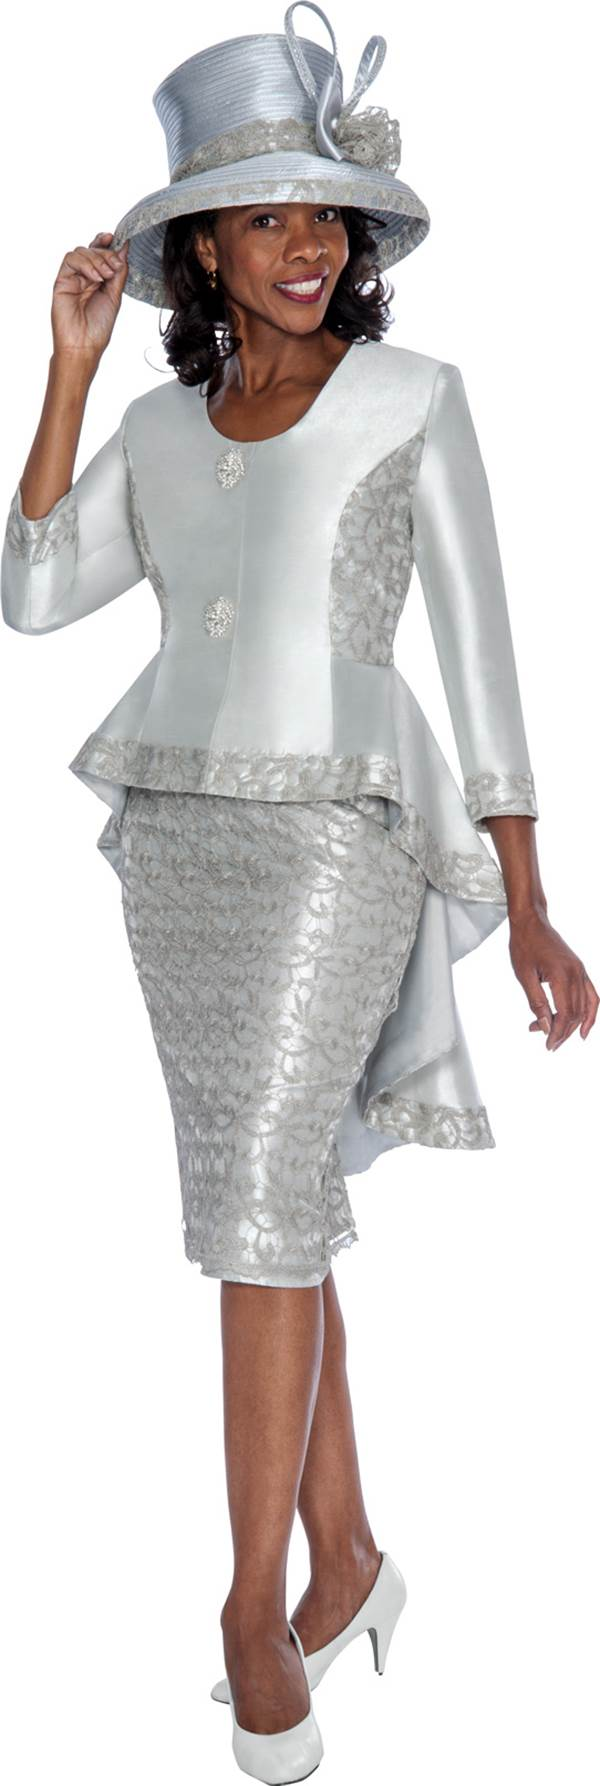 gmi g6012 silver womens church suits